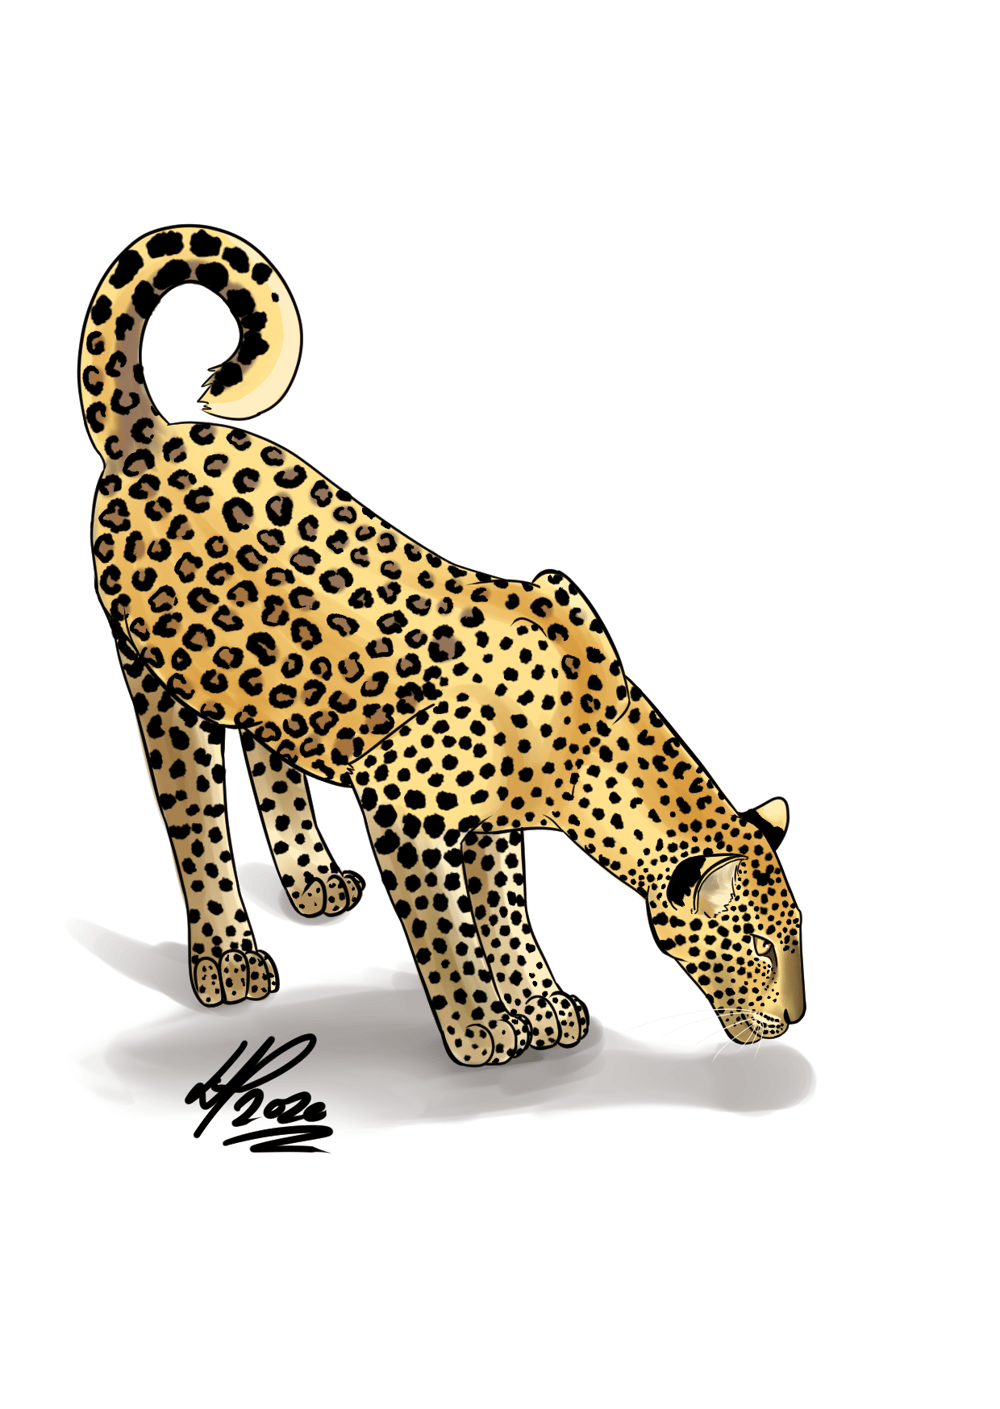 Leopard Versuch 1 (First attempt) - image 1 - student project